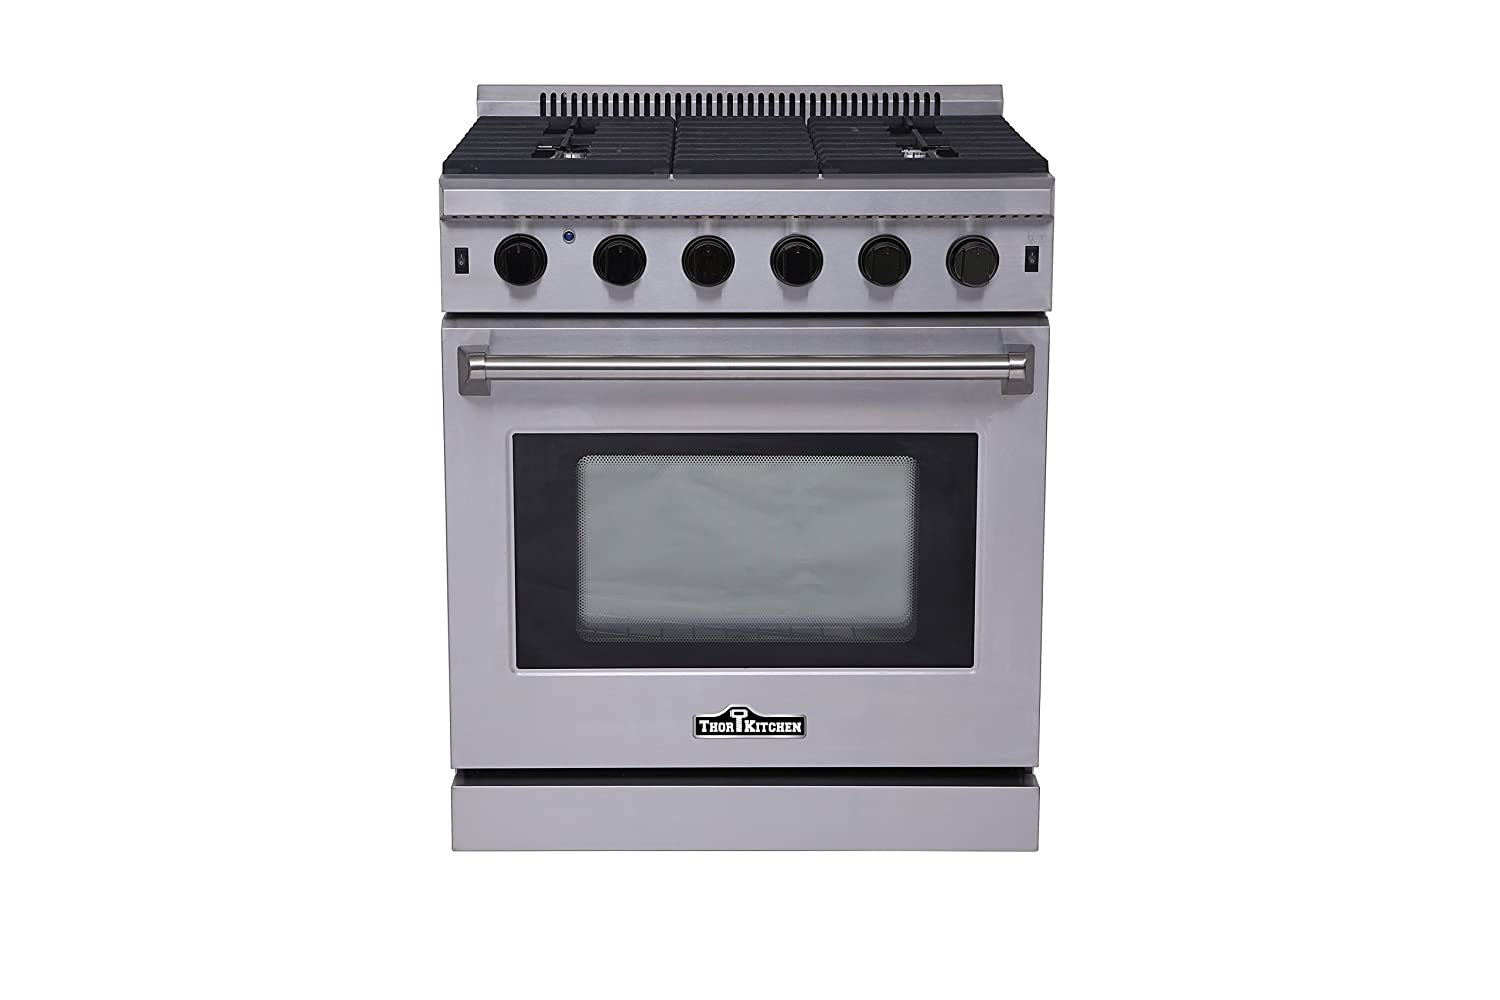 Thorkitchen LRG3001U Freestanding Style Gas Range with 4.55 cubic Feet Oven, 5 Burners, Convection Fan, 30- Inch